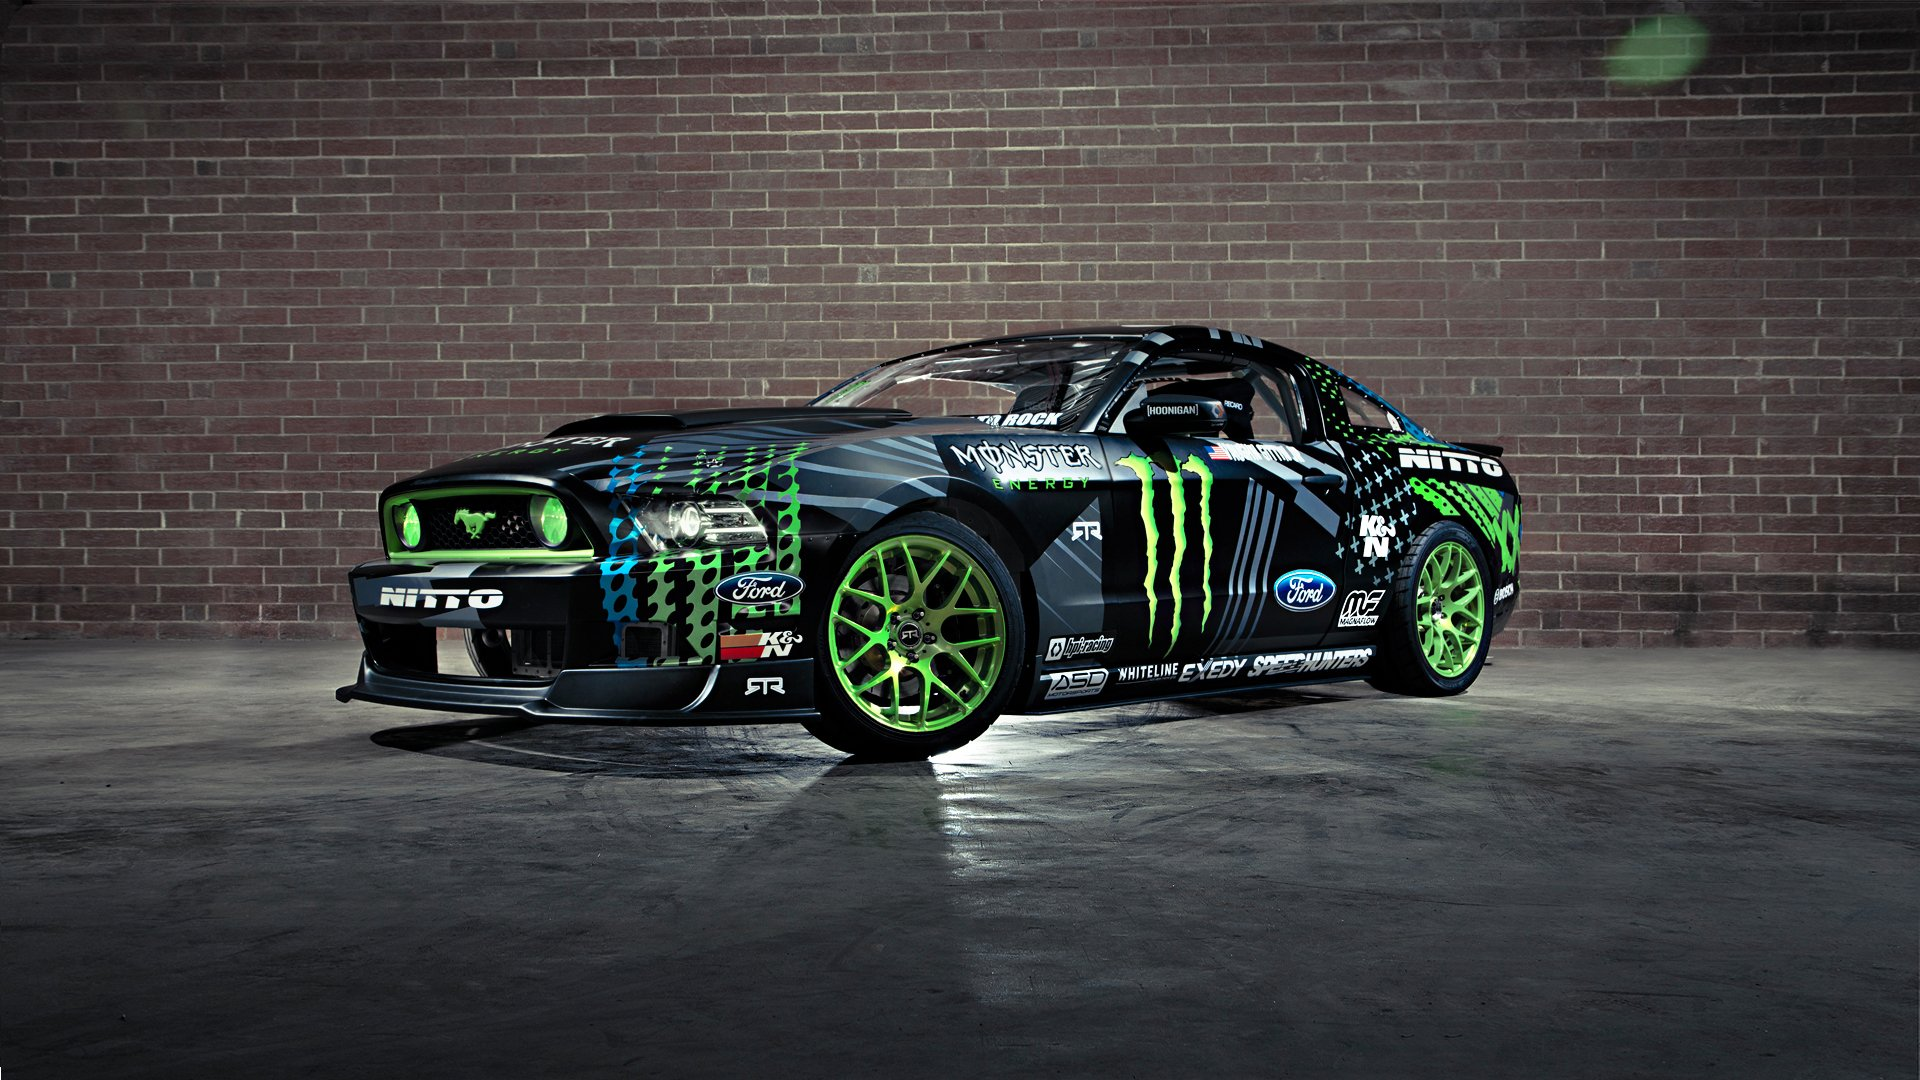 V8 Engine Tattoo Ford Mustang RTR Monst...